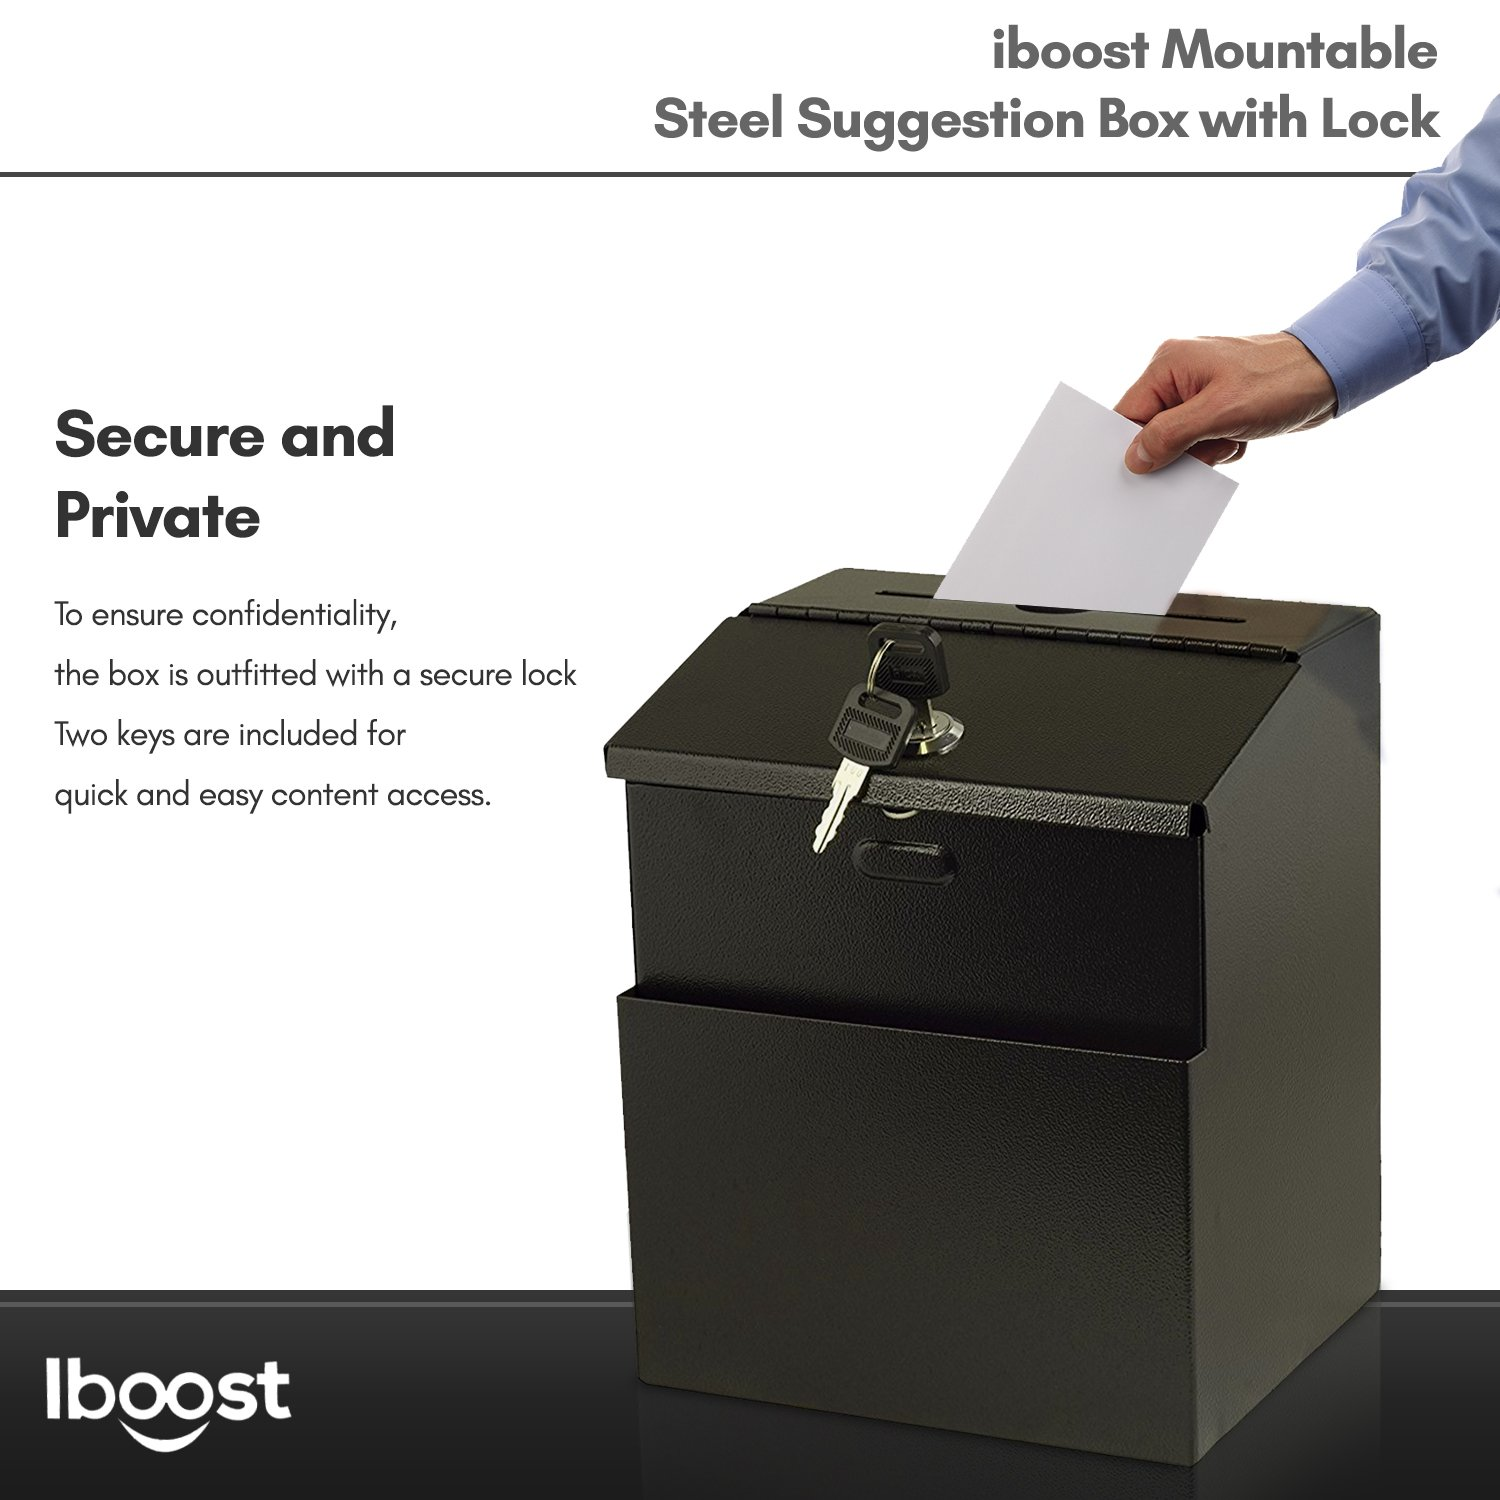 iBoost Suggestion Box with Mounting Hardware (Lock, 2 Keys)